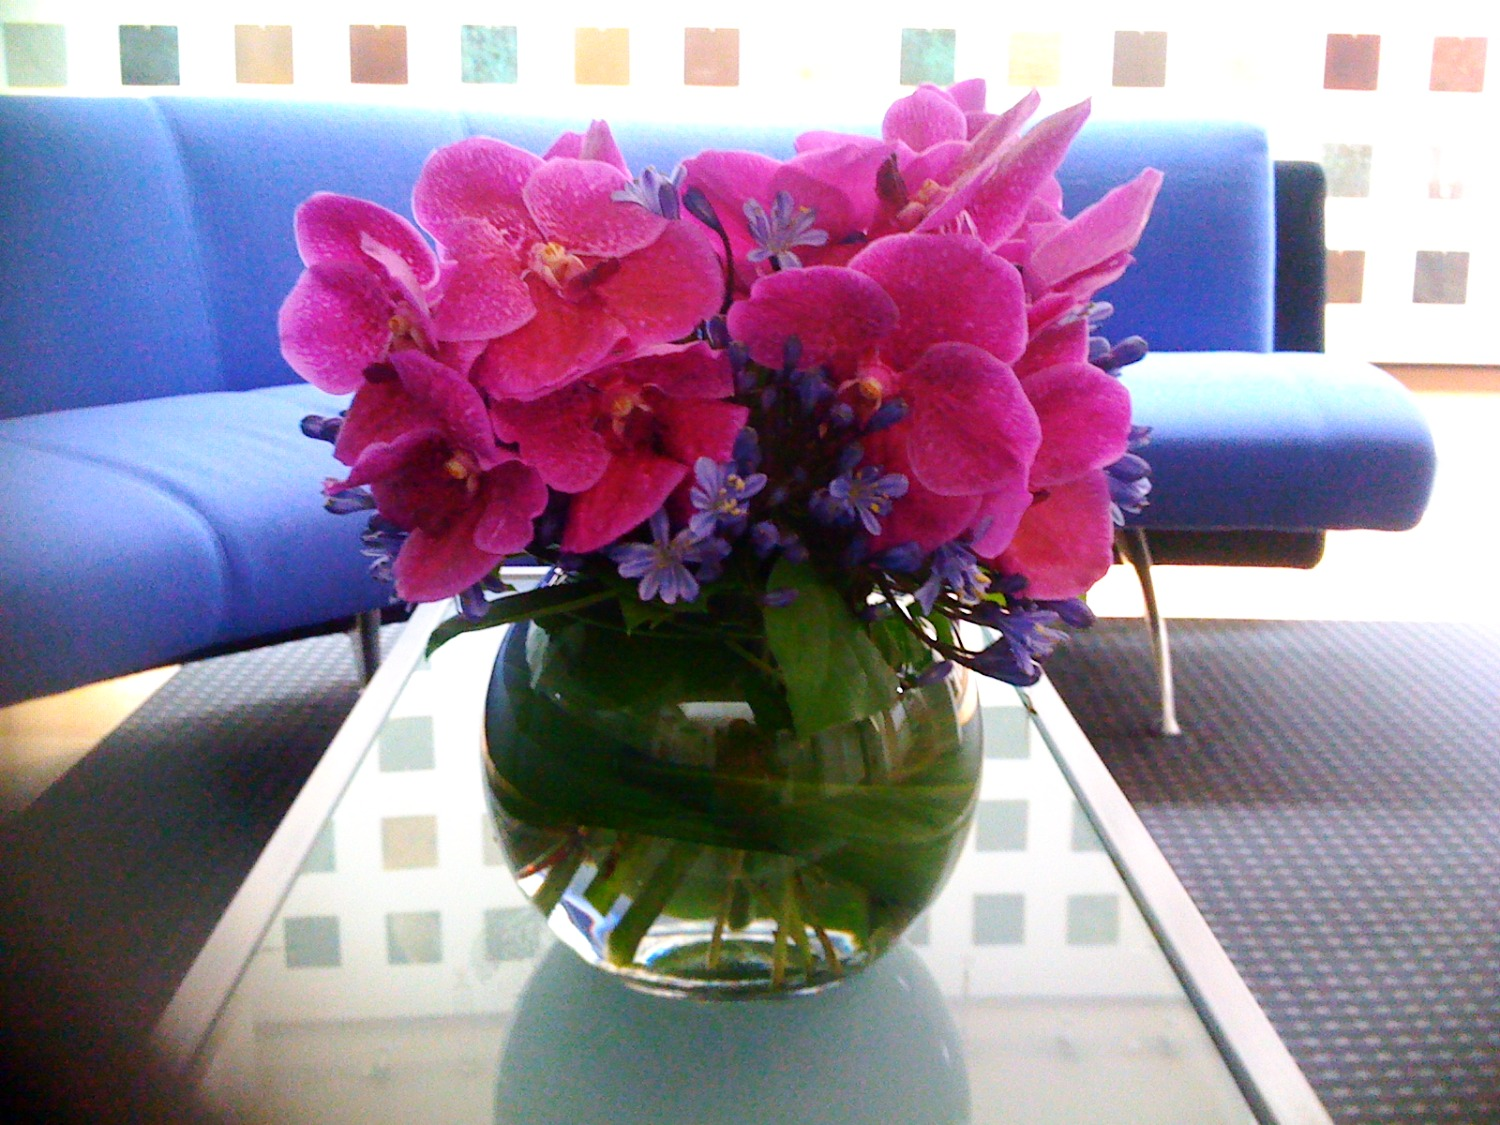 Vanda orchids in a fishbowl